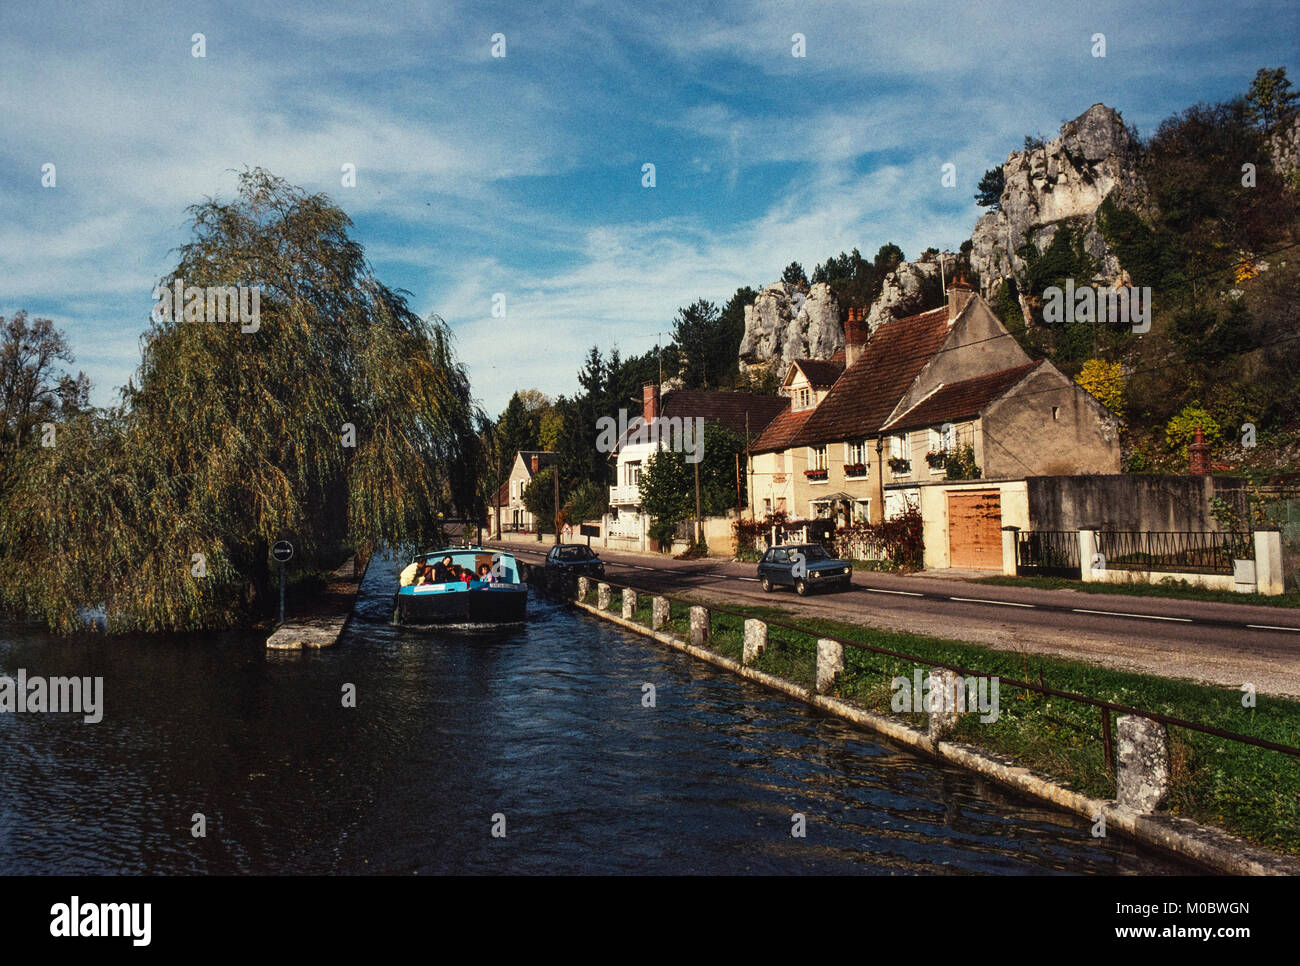 Canal du Nivernais France. The Canal du Nivernais links the Loire with the Seine following approximately the course - Stock Image